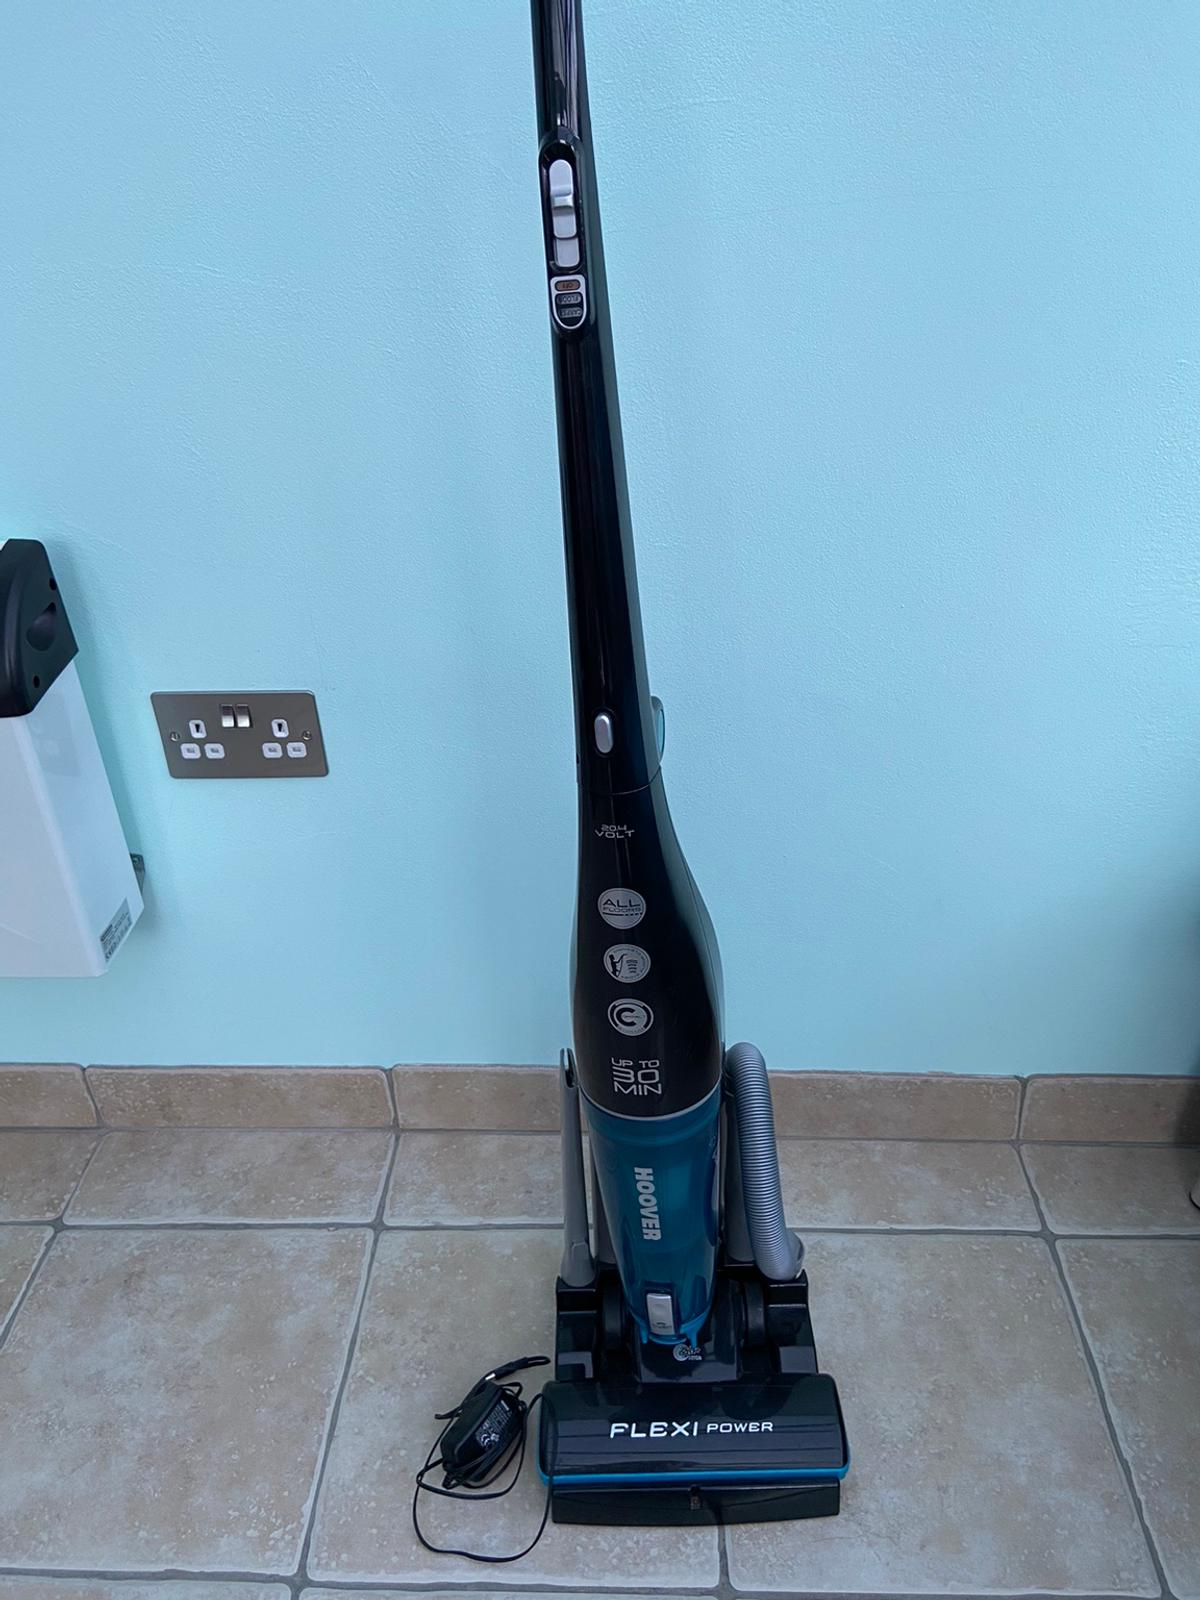 Flexi Power rechargeable Hoover. Suitable for all floors and up to 30 minutes running time. Includes stand, all utensils and charging plug (no instruction manual). Excellent condition